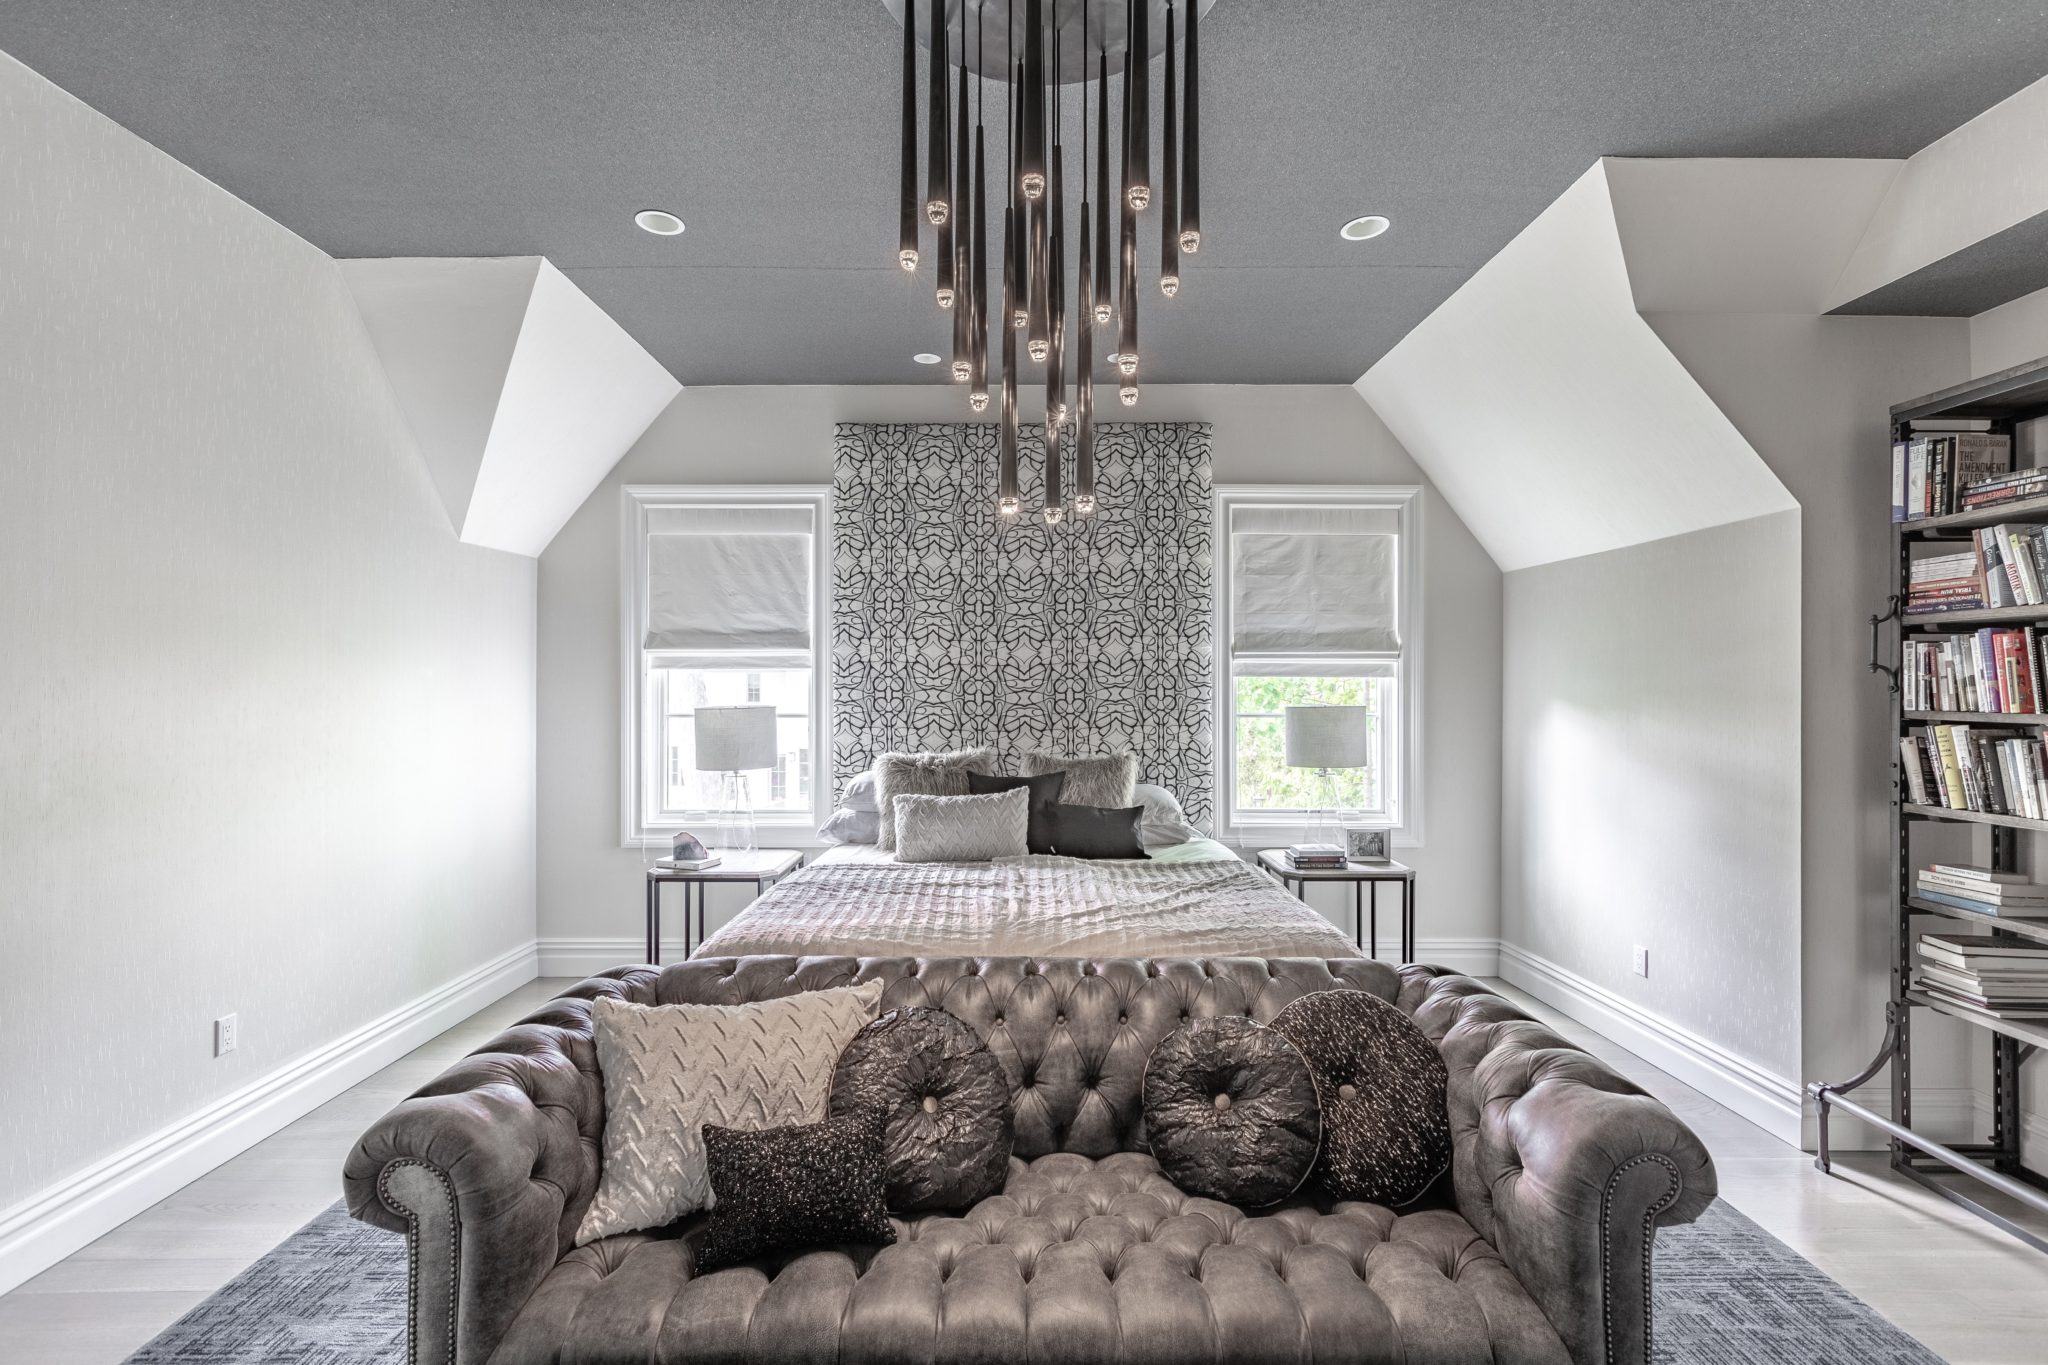 Master bedroom with vertical patterned headboard adjacent to gray leather sofa. by Shelley Cekirge Interiors